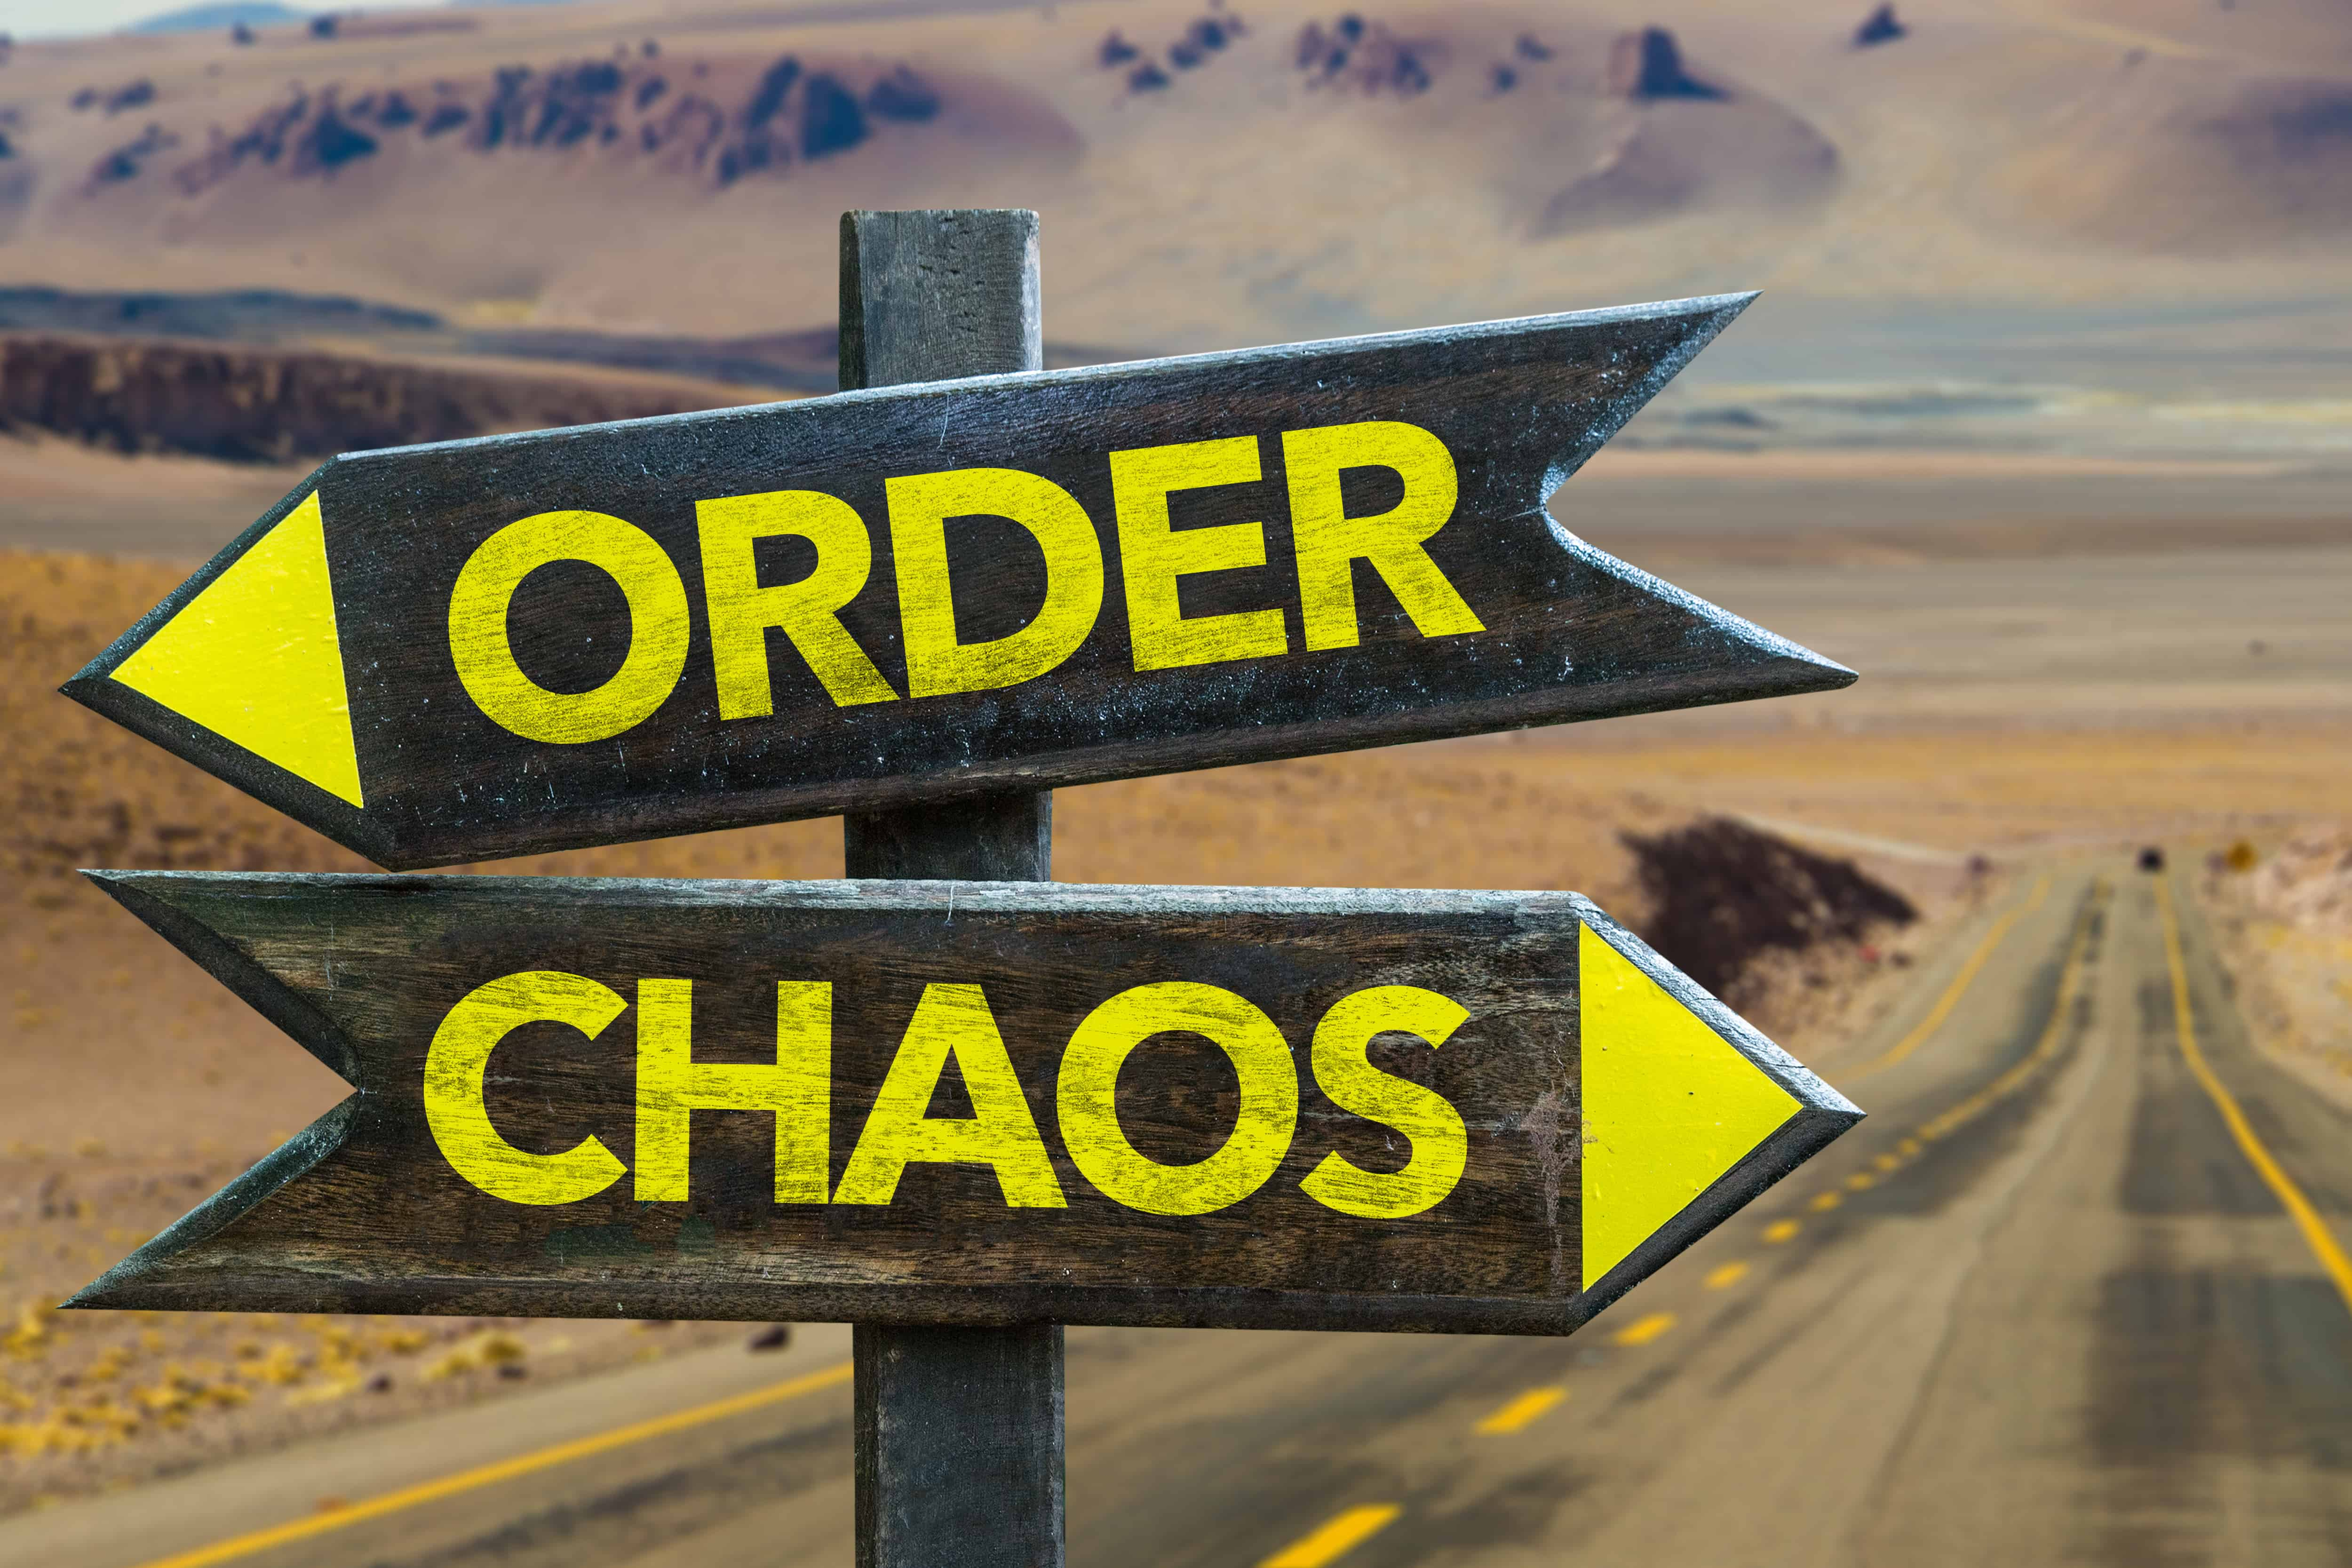 Order - Chaos signpost in a desert road background